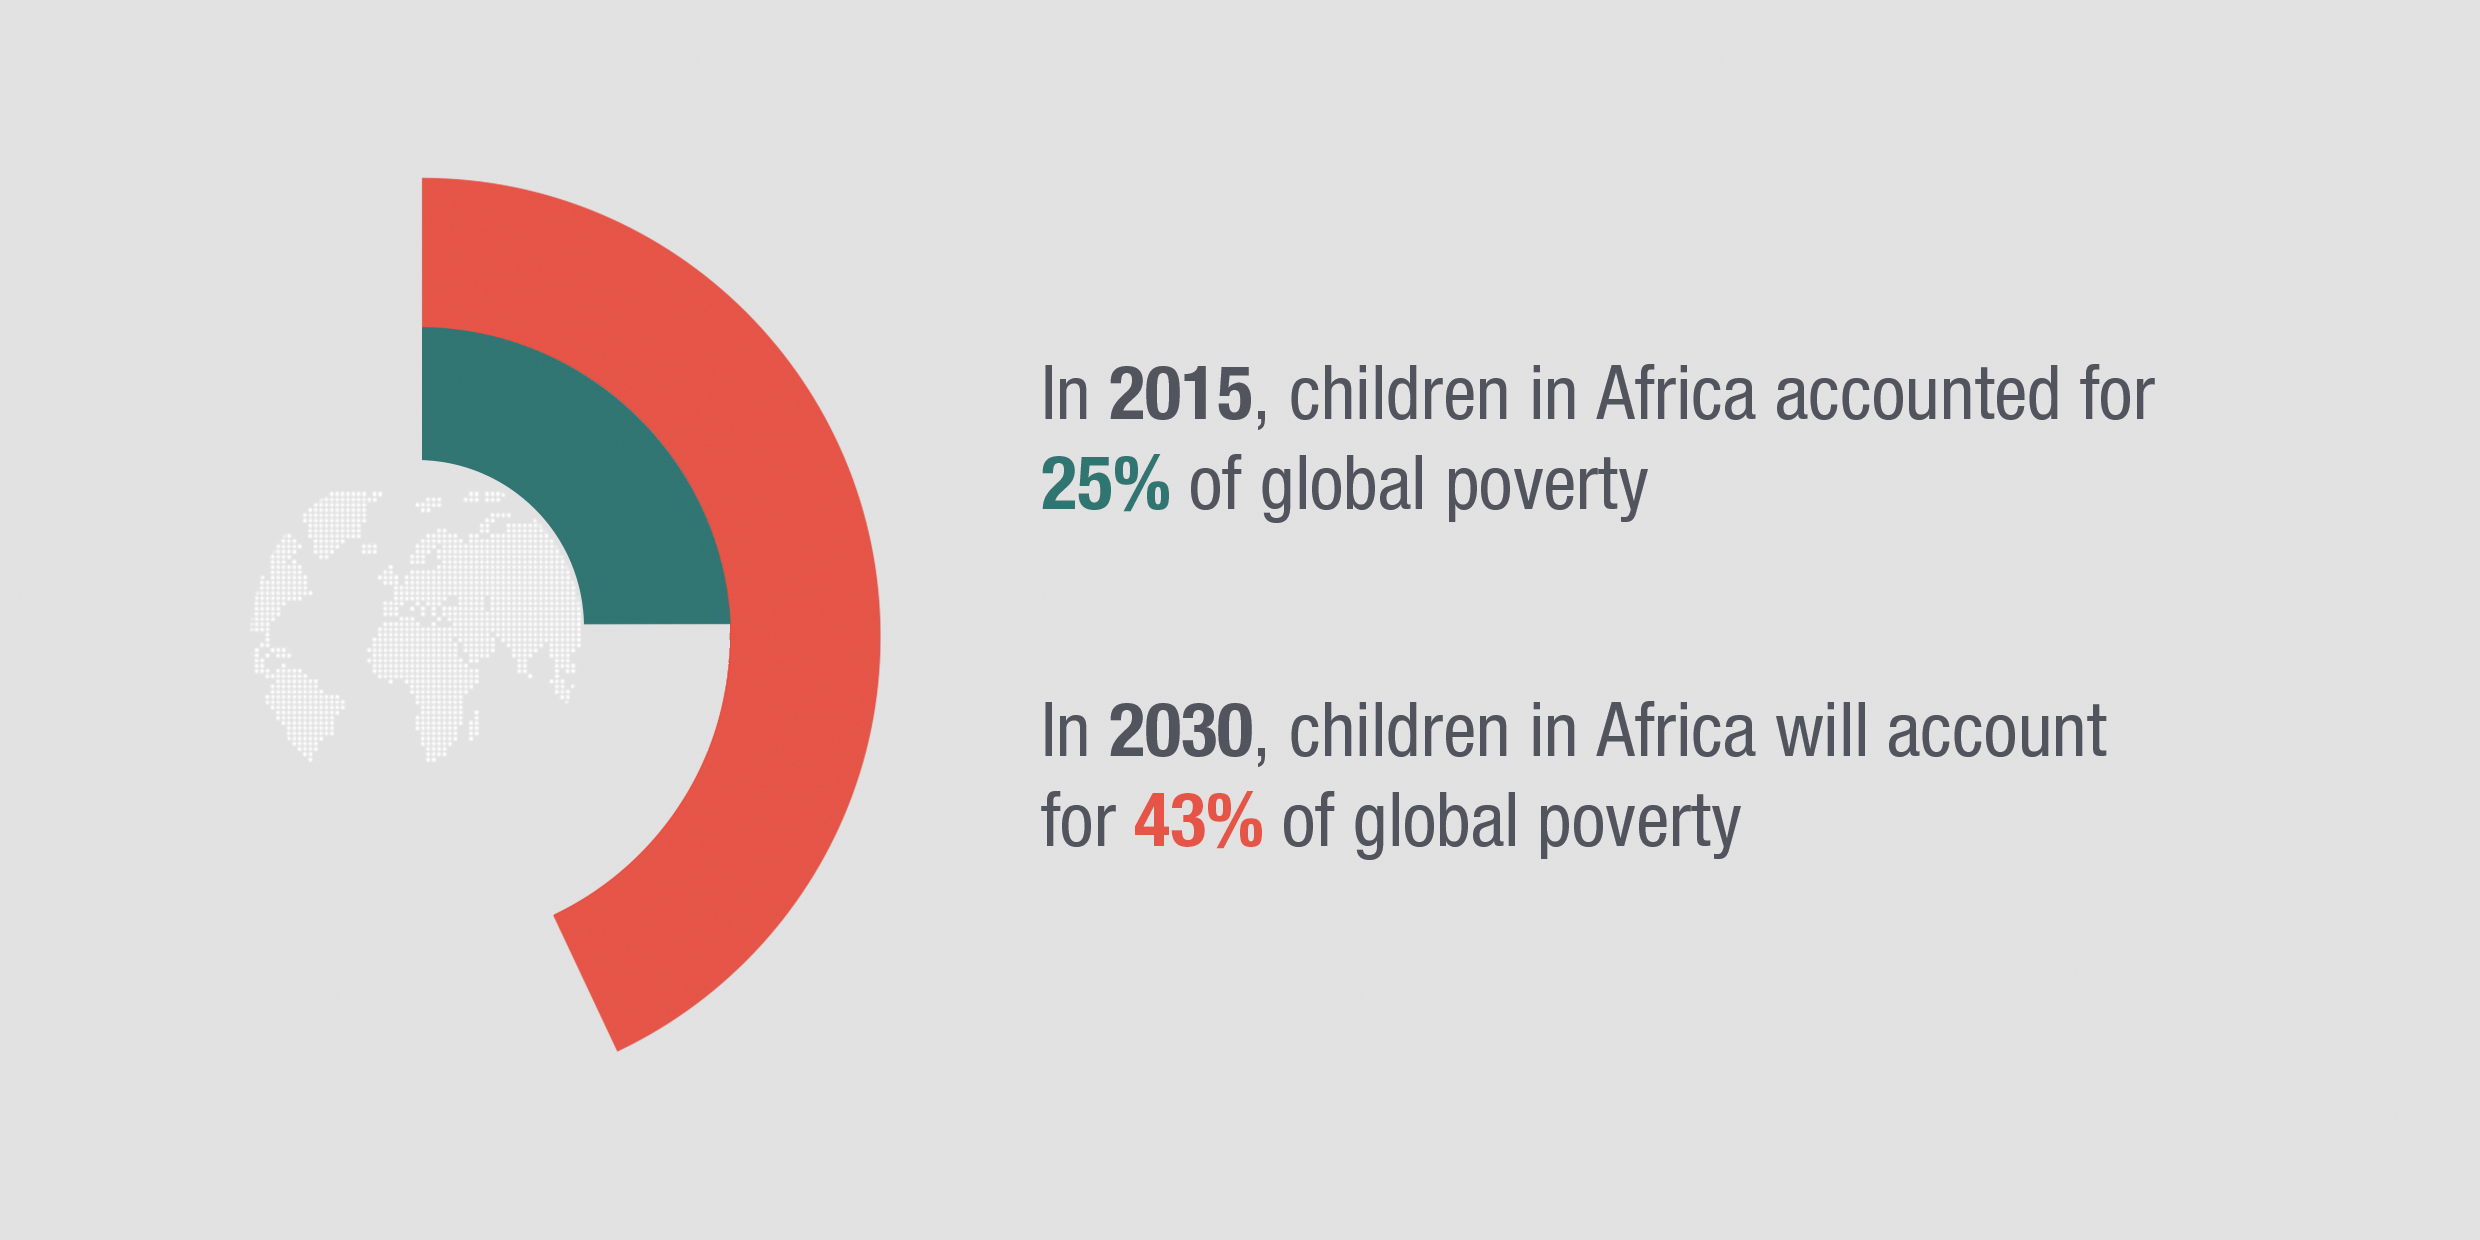 Infographic: by 2030, children in Africa will account for almost half of global poverty